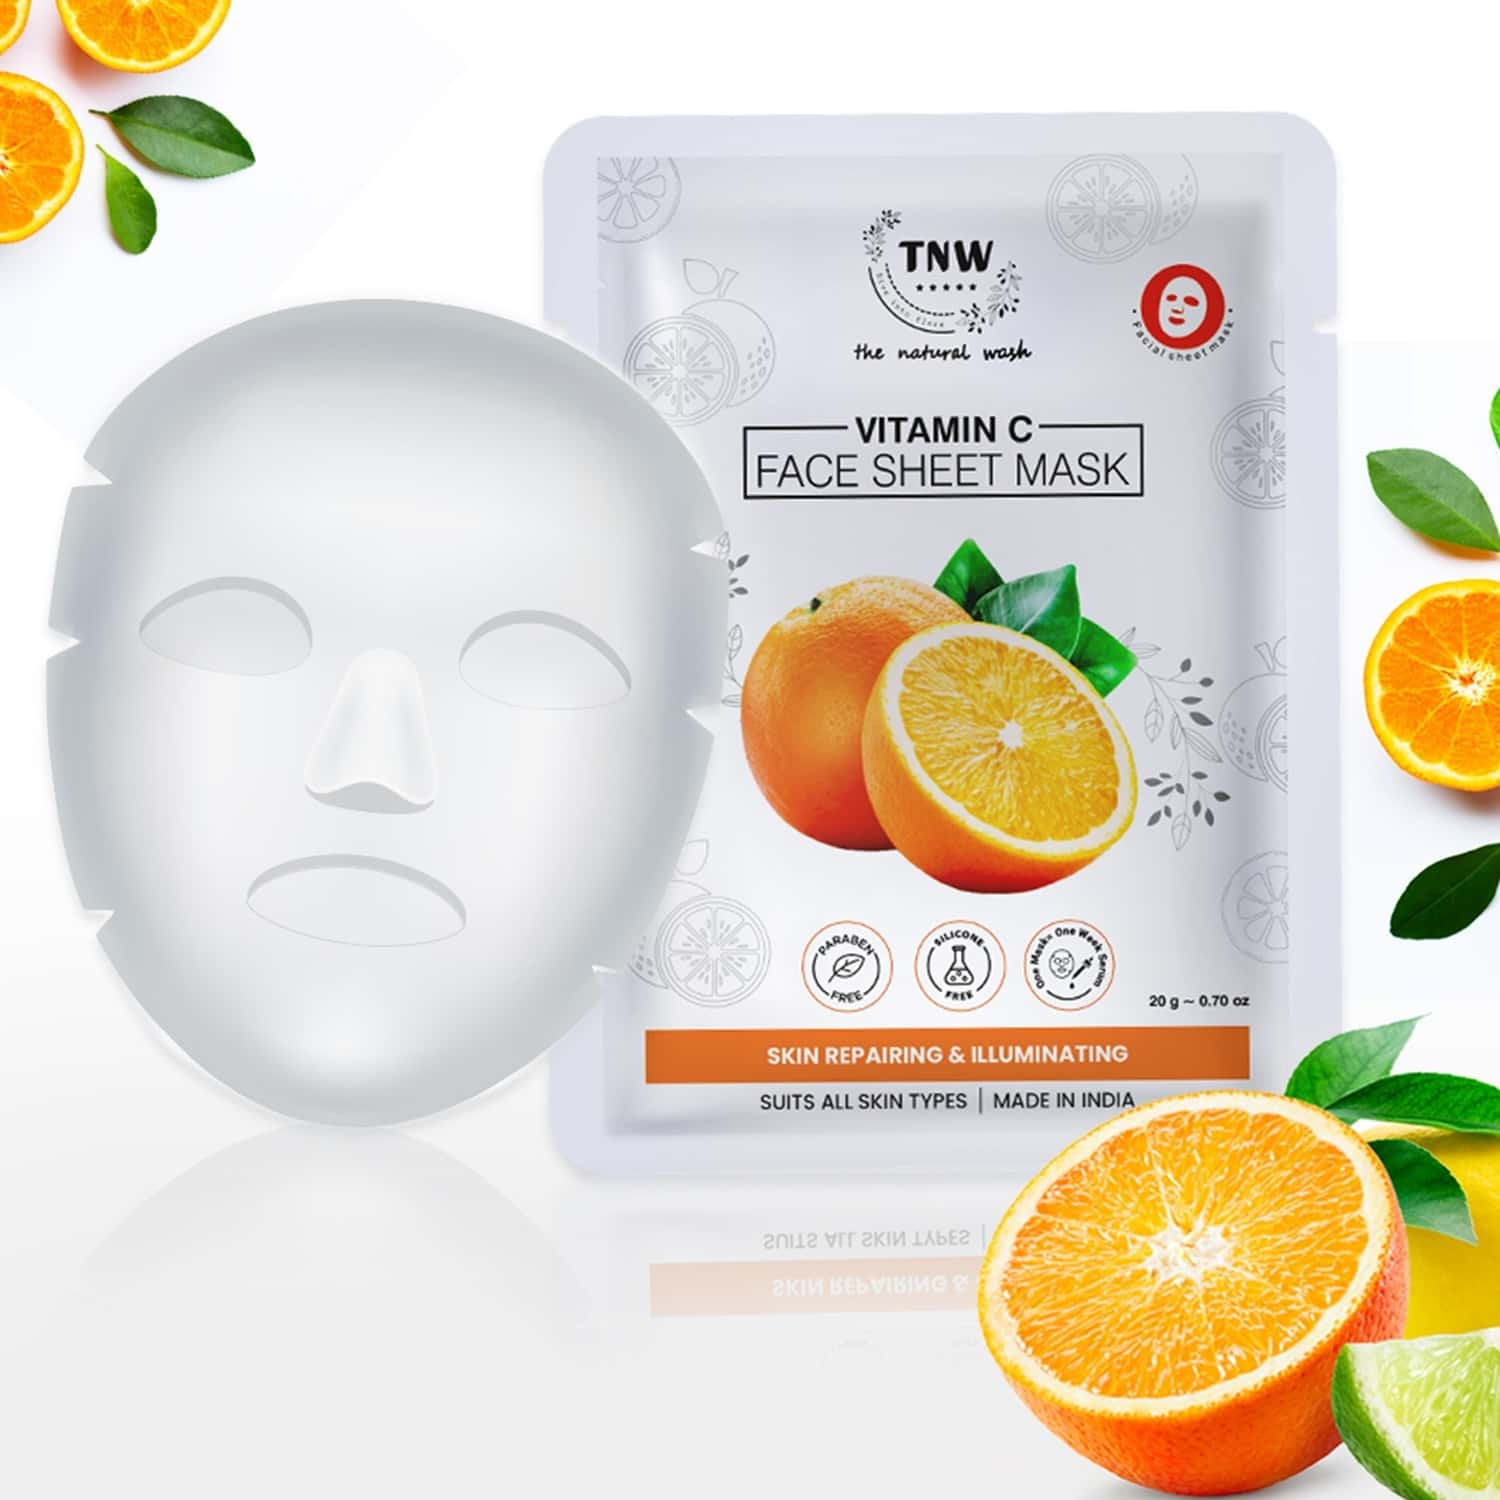 Tnw - The Natural Wash Vitamin C Face Sheet Mask - Pack Of 2